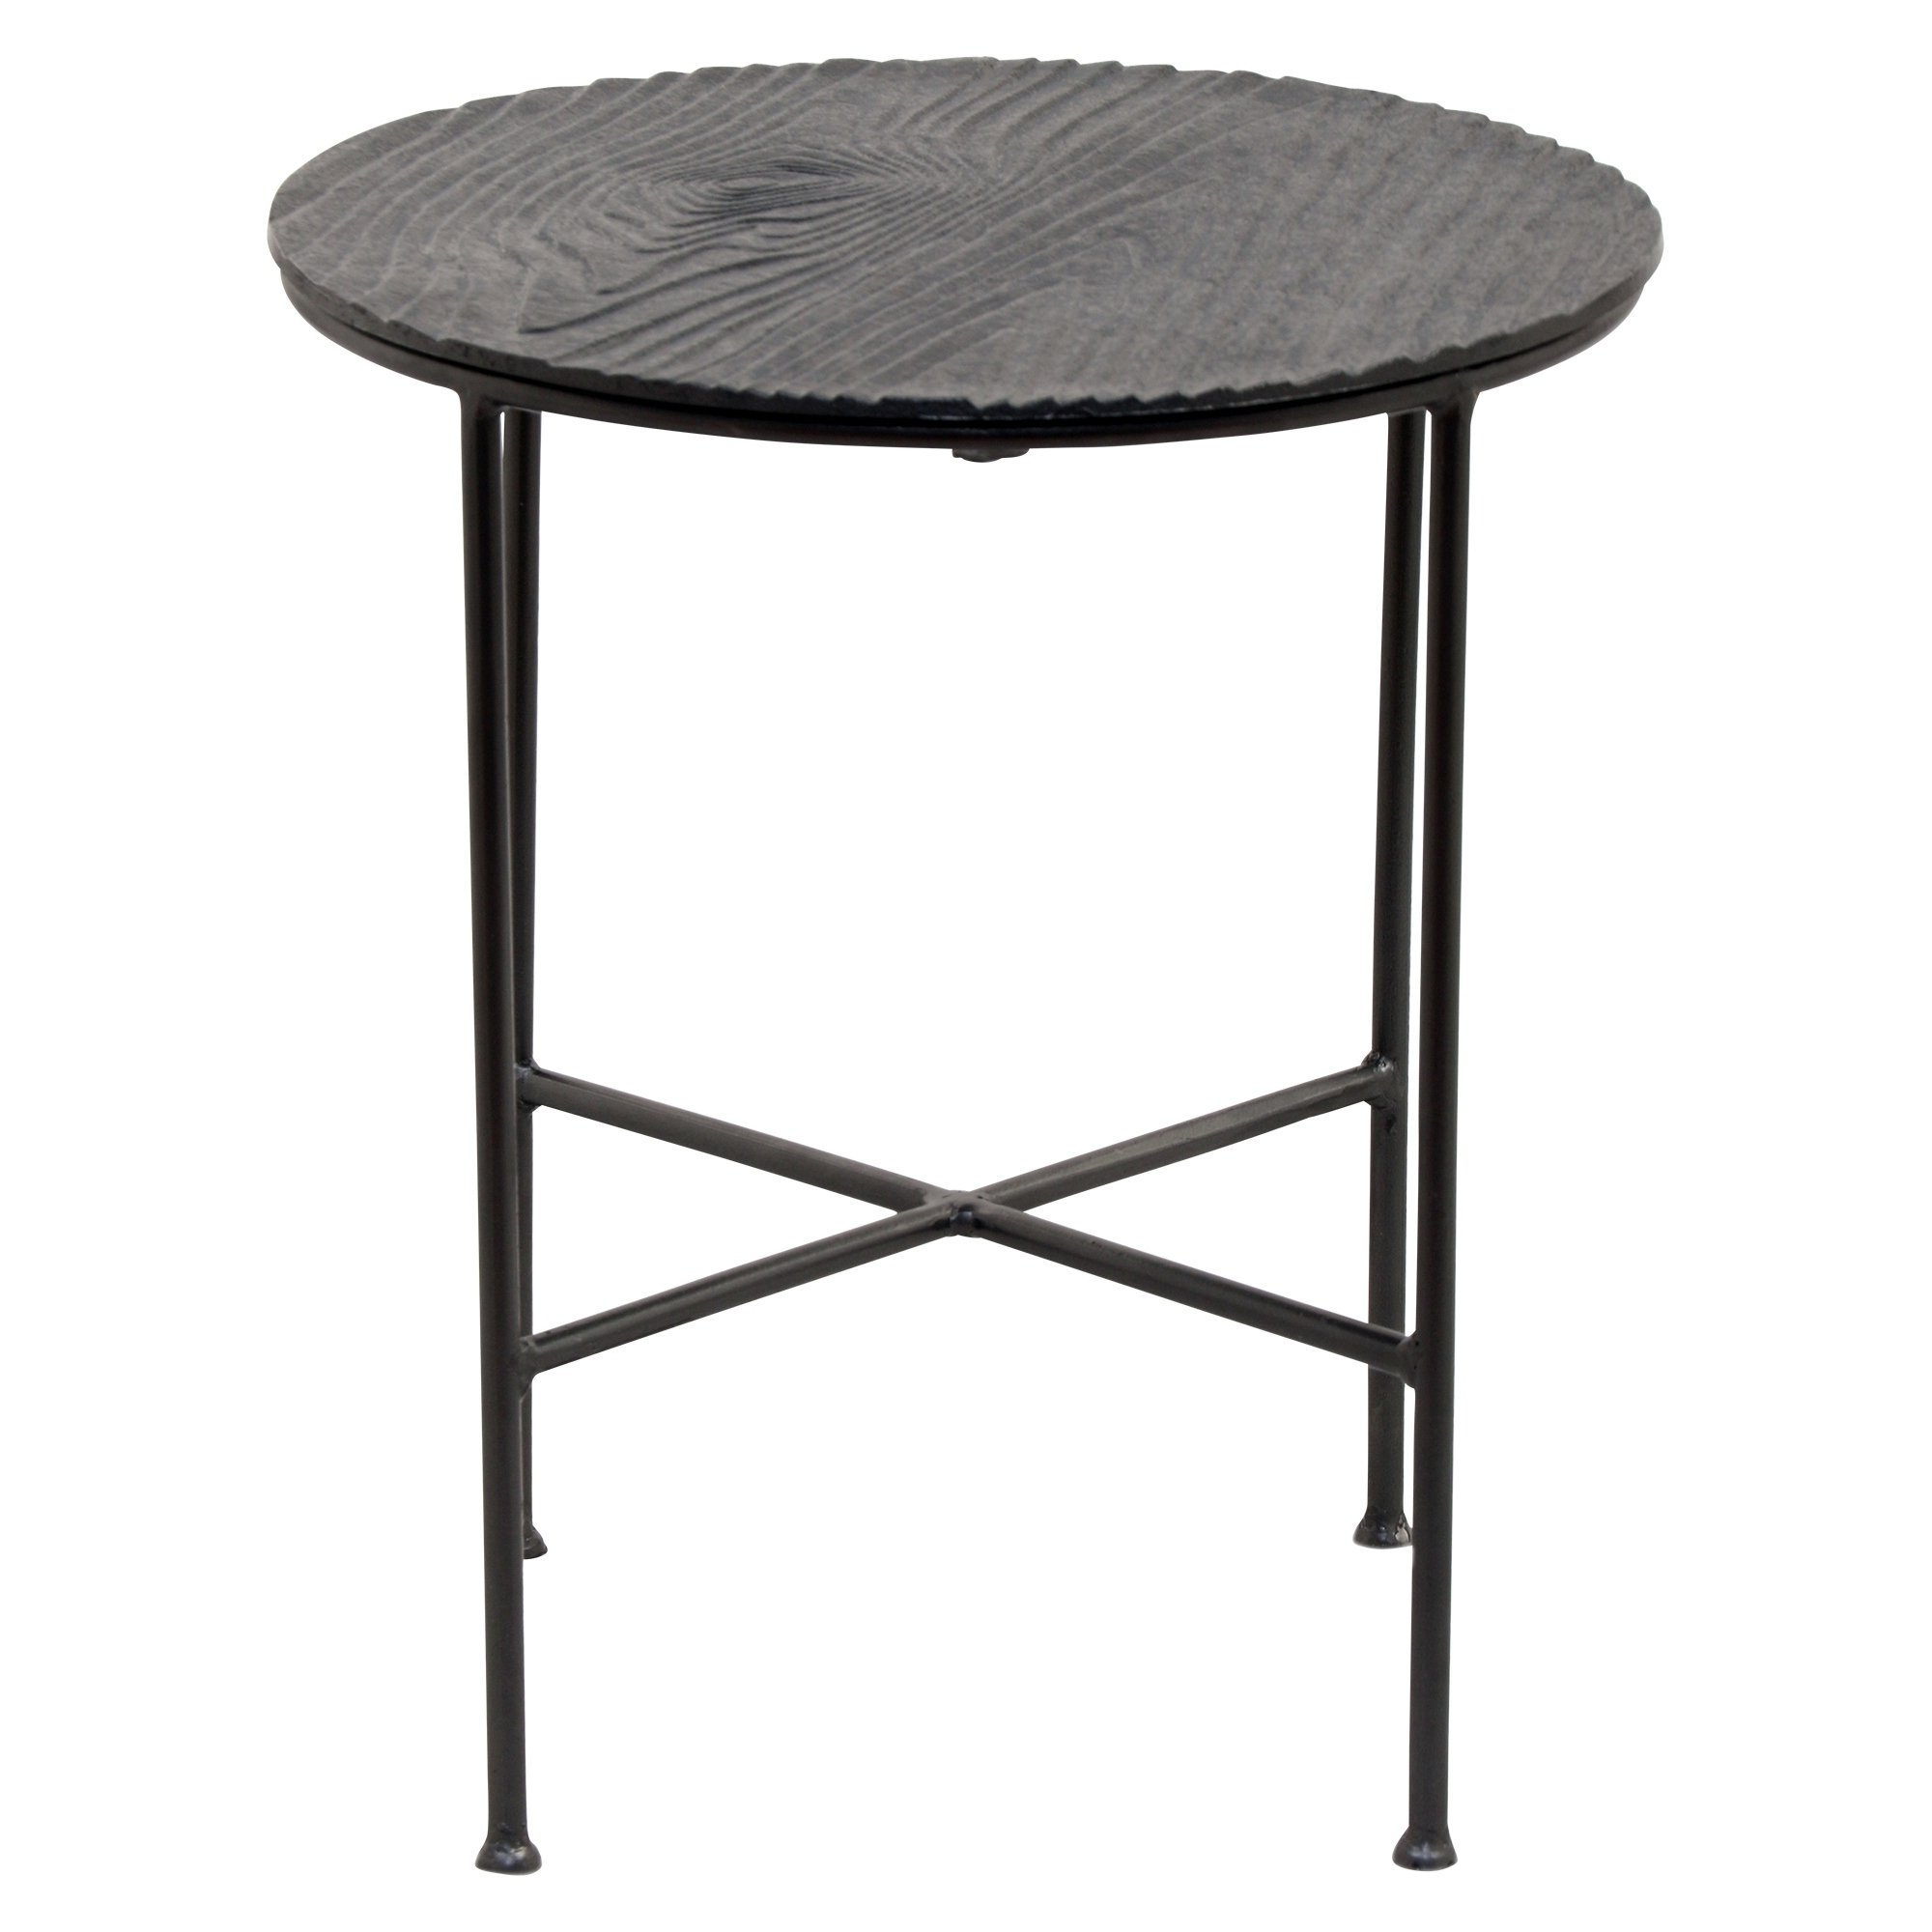 Favorite Shop Renwil Bale Grey Aluminum Round Accent Table – Free Shipping In Bale Rustic Grey Dining Tables (View 9 of 25)